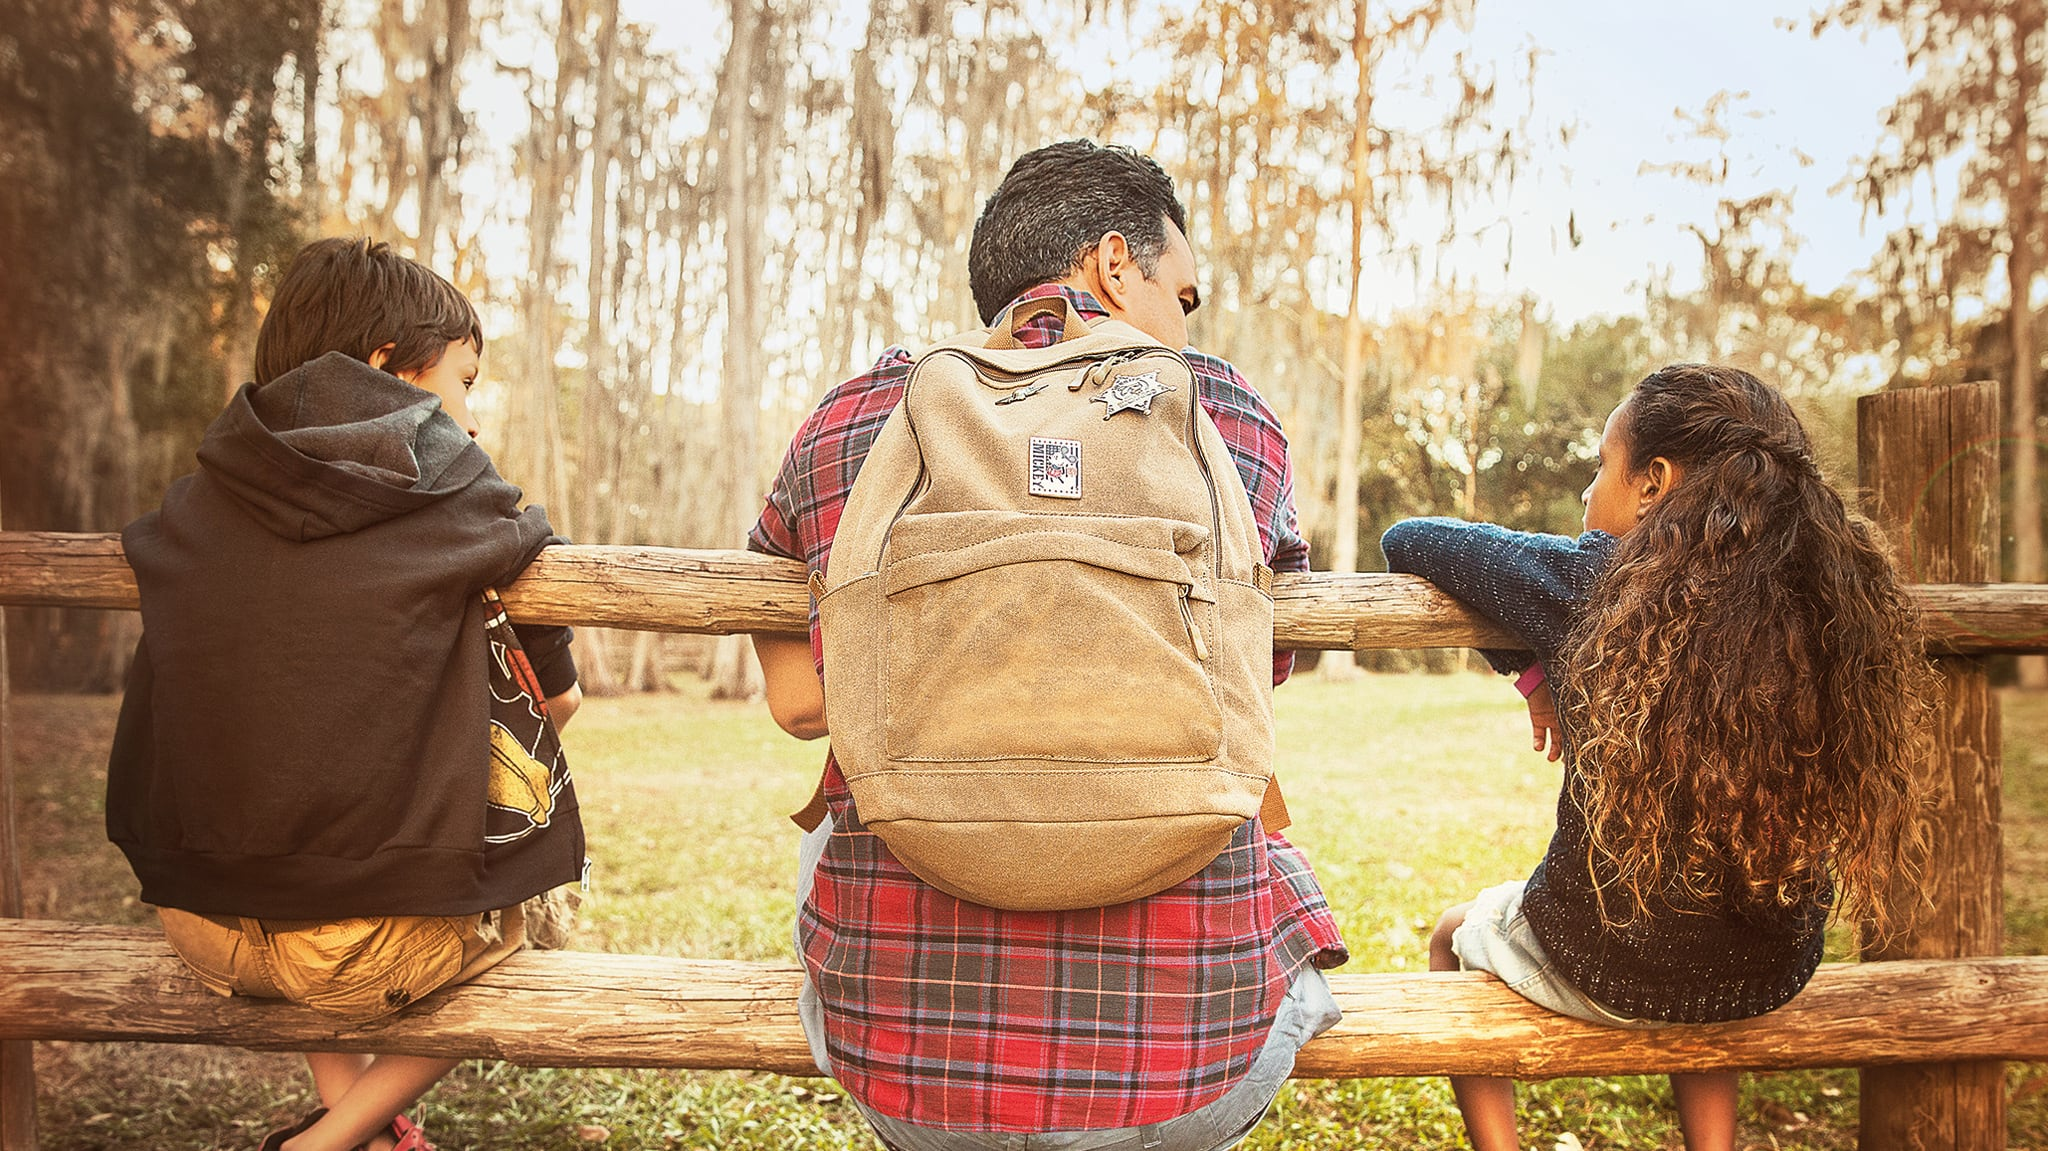 A father wearing a backpack sits in between rungs of a  wooden fence with his 2 children